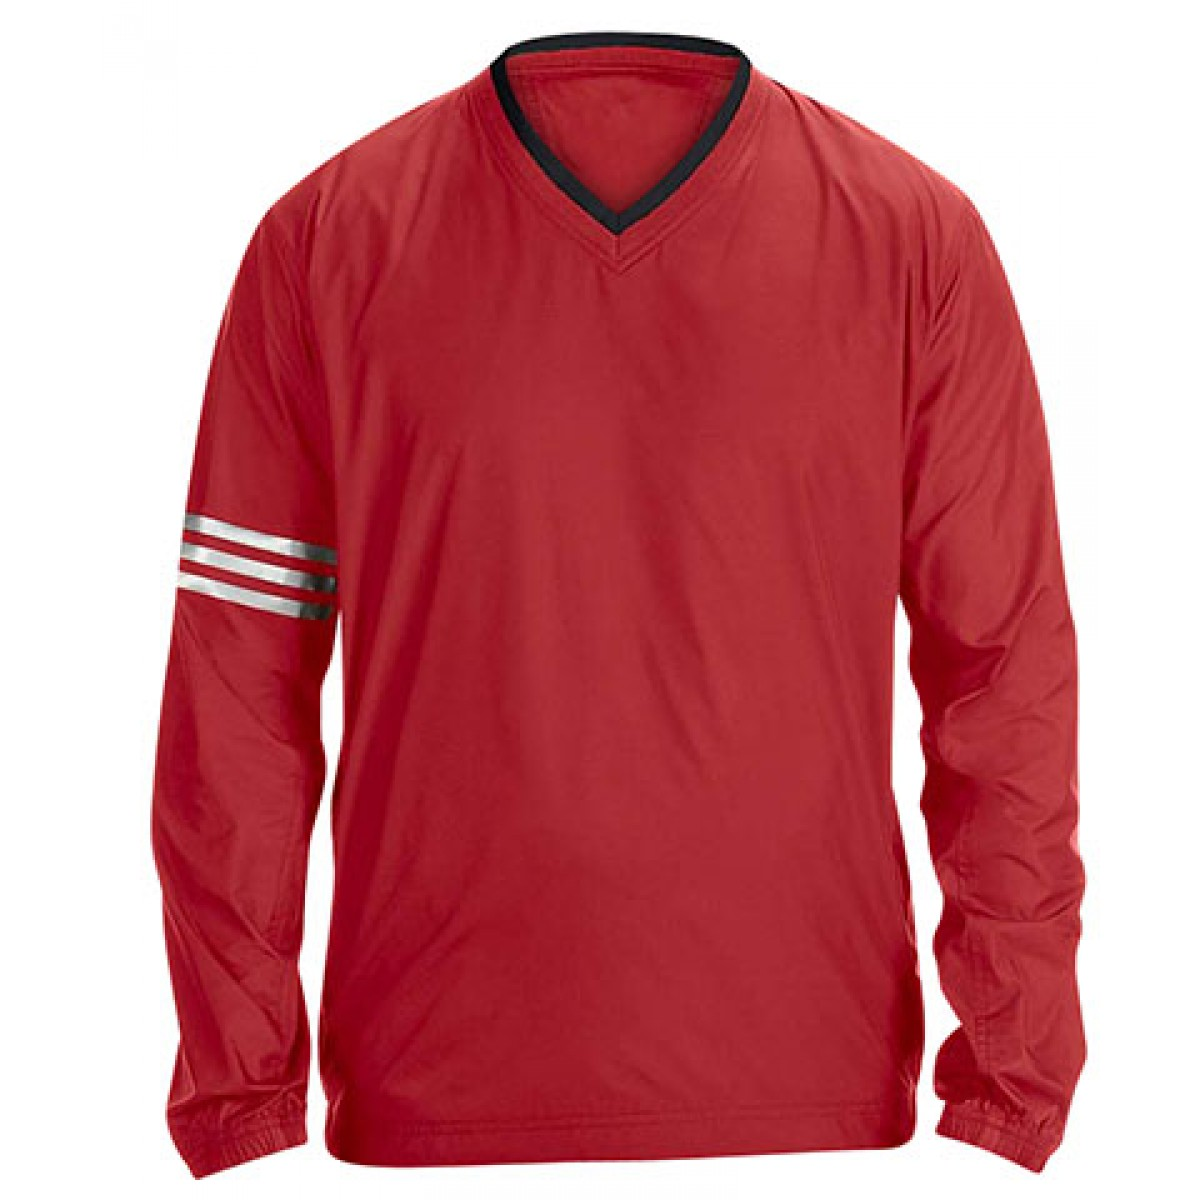 Adidas ClimaLite V-Neck Long Sleeve Wind Shirt-Red-XL